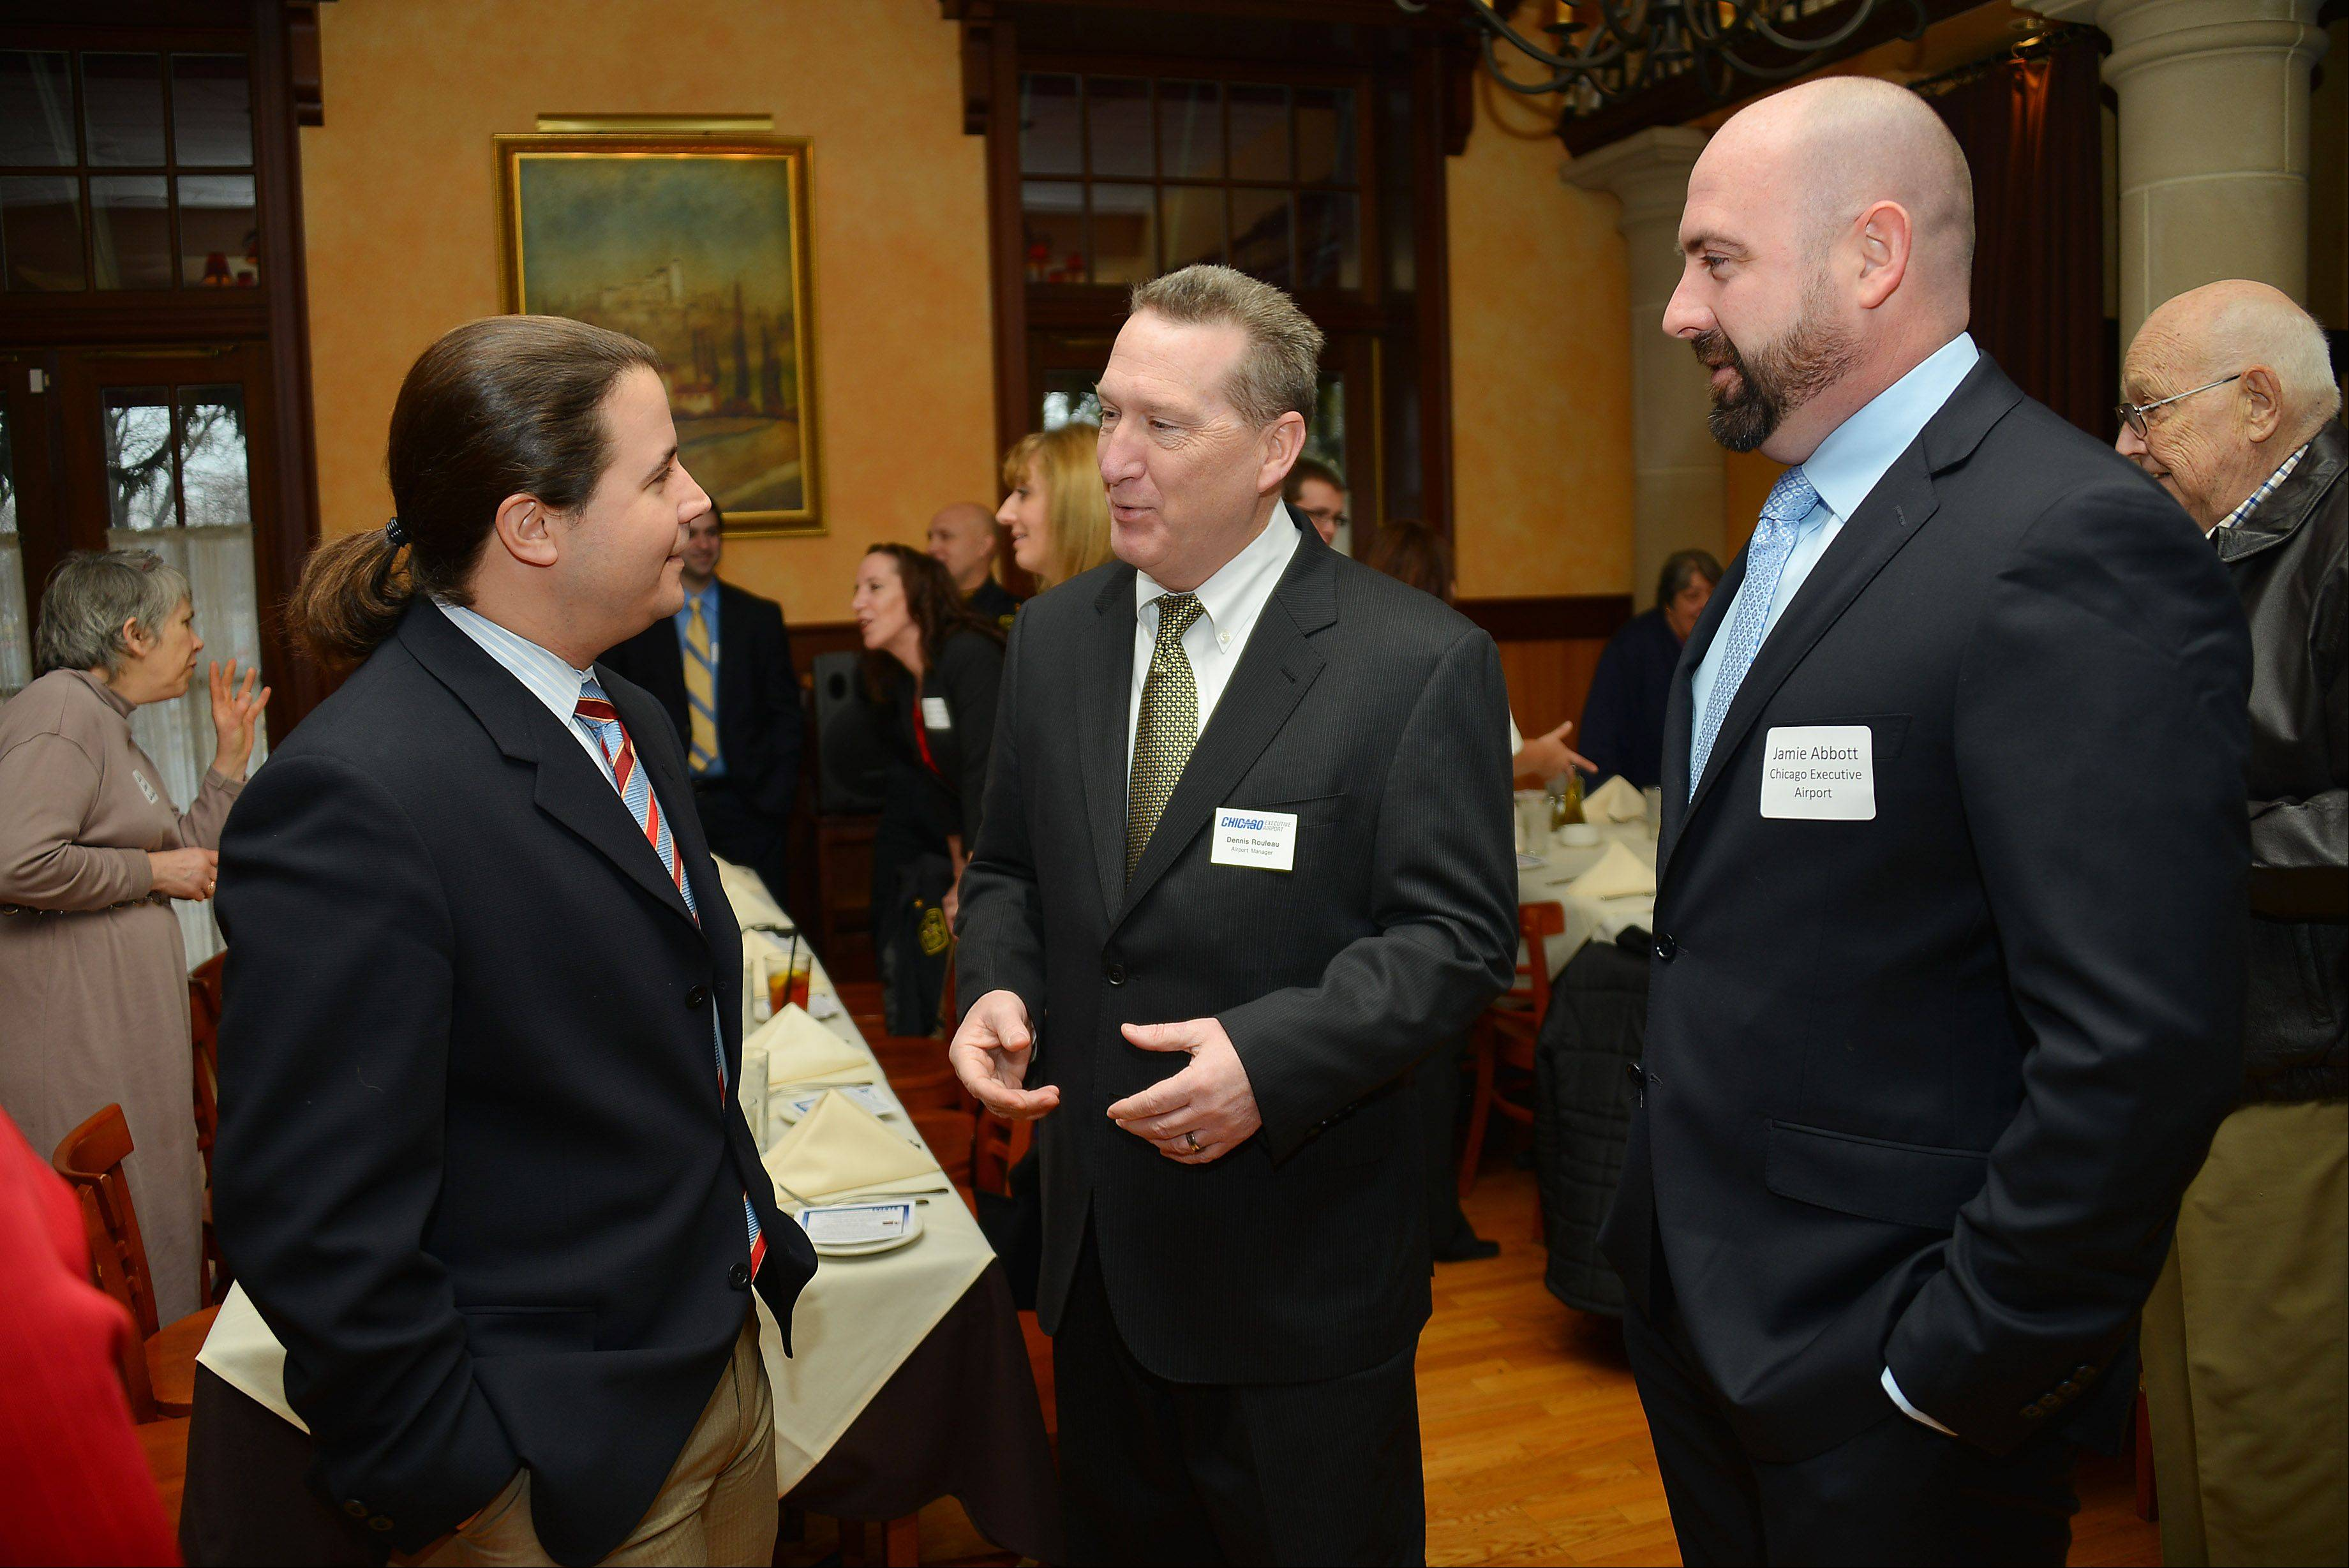 Dennis Rouleau, center, manager of Chicago Executive Airport, talks with Wheeling Village Manager Jon Sfondilis, left, and Jamie Abbott, assistant airport manager, at an event earlier this year. Abbott is taking over as acting manager while Rouleau is going on medical leave.